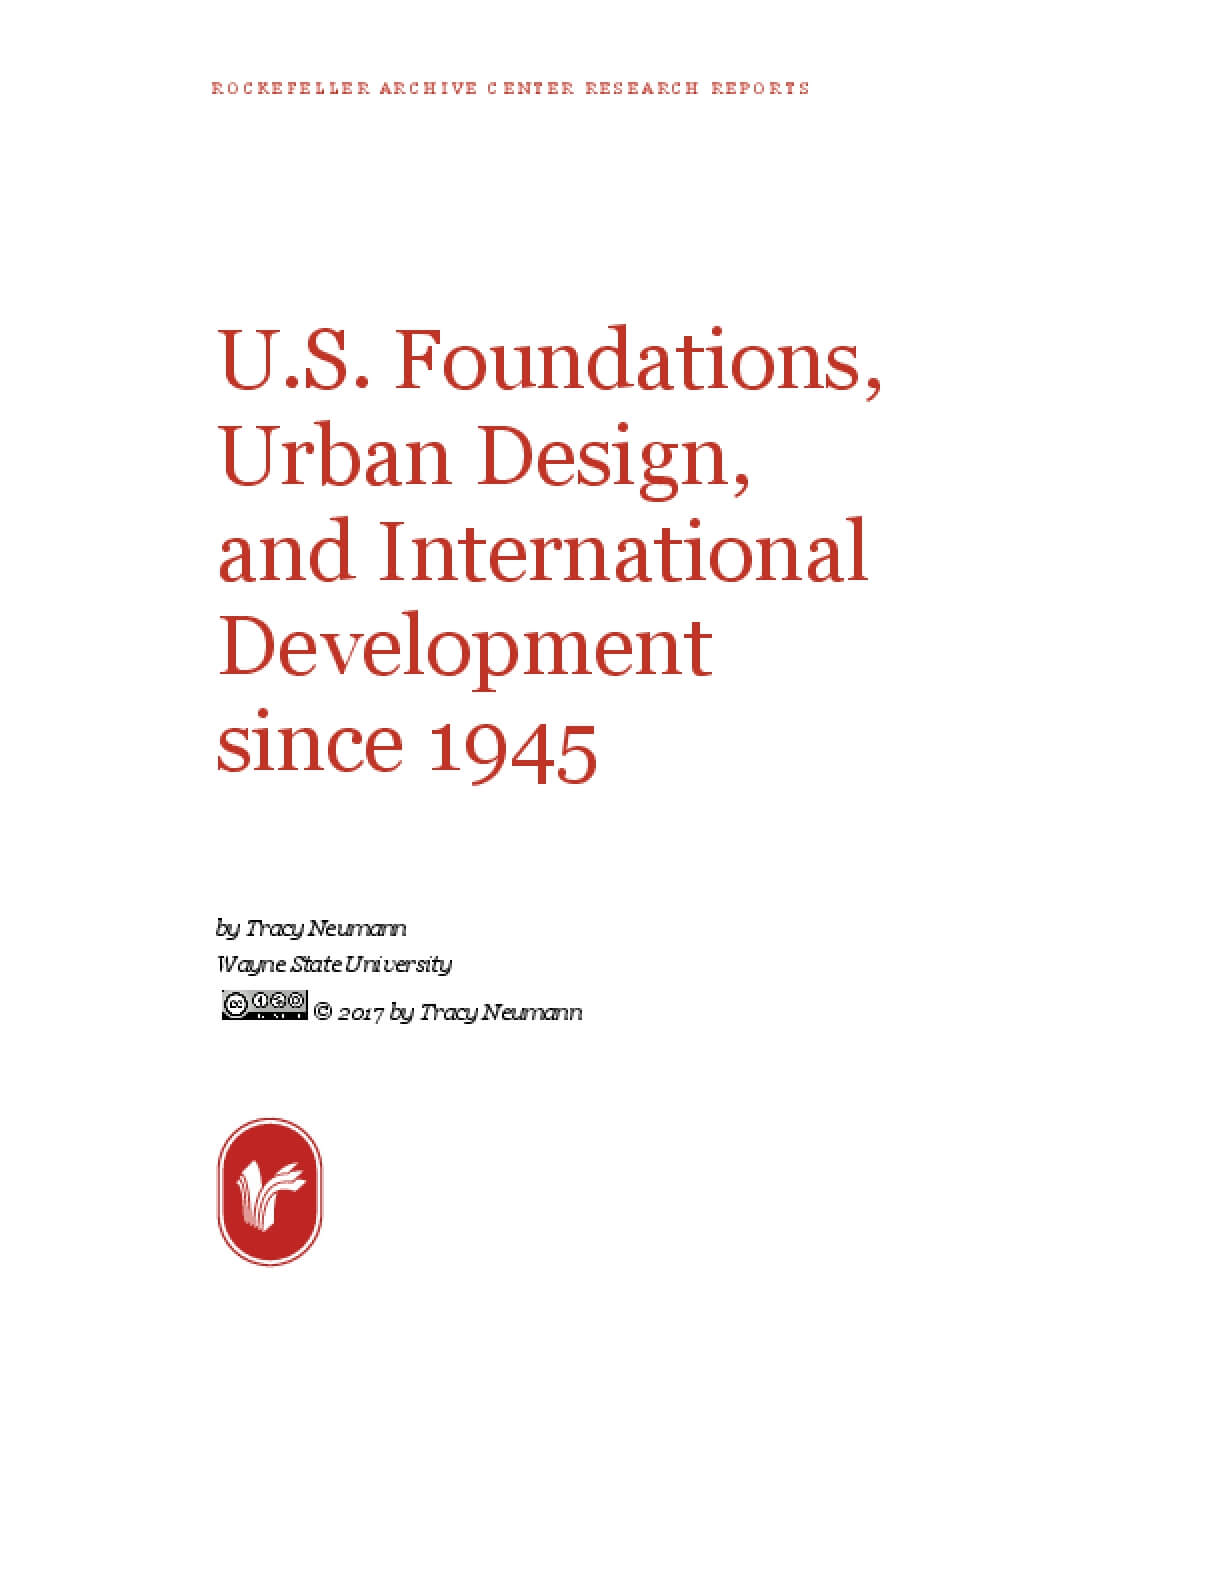 U.S. Foundations, Urban Design, and International Development since 1945